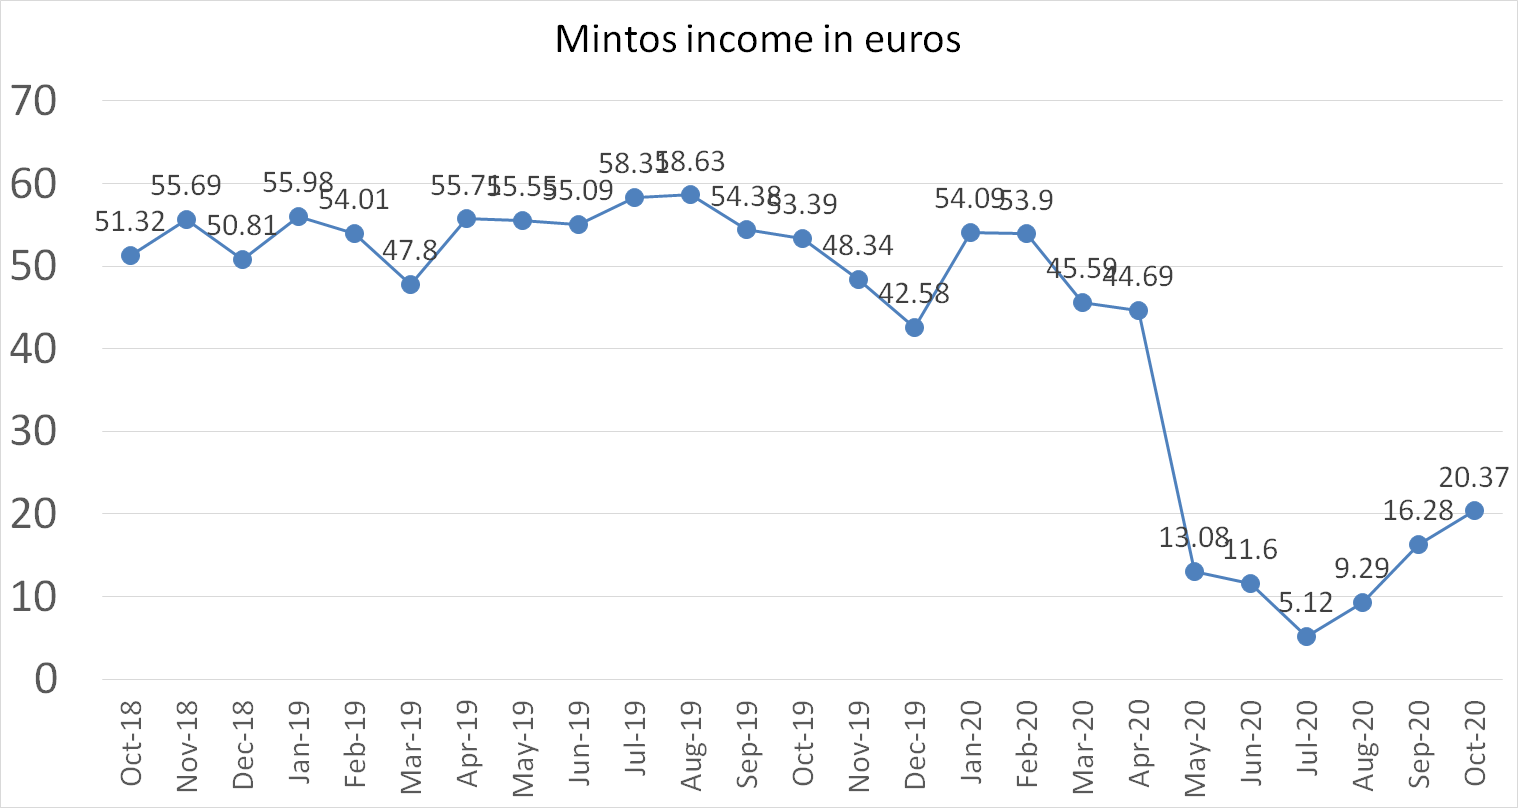 Mintos income in euros october 2020